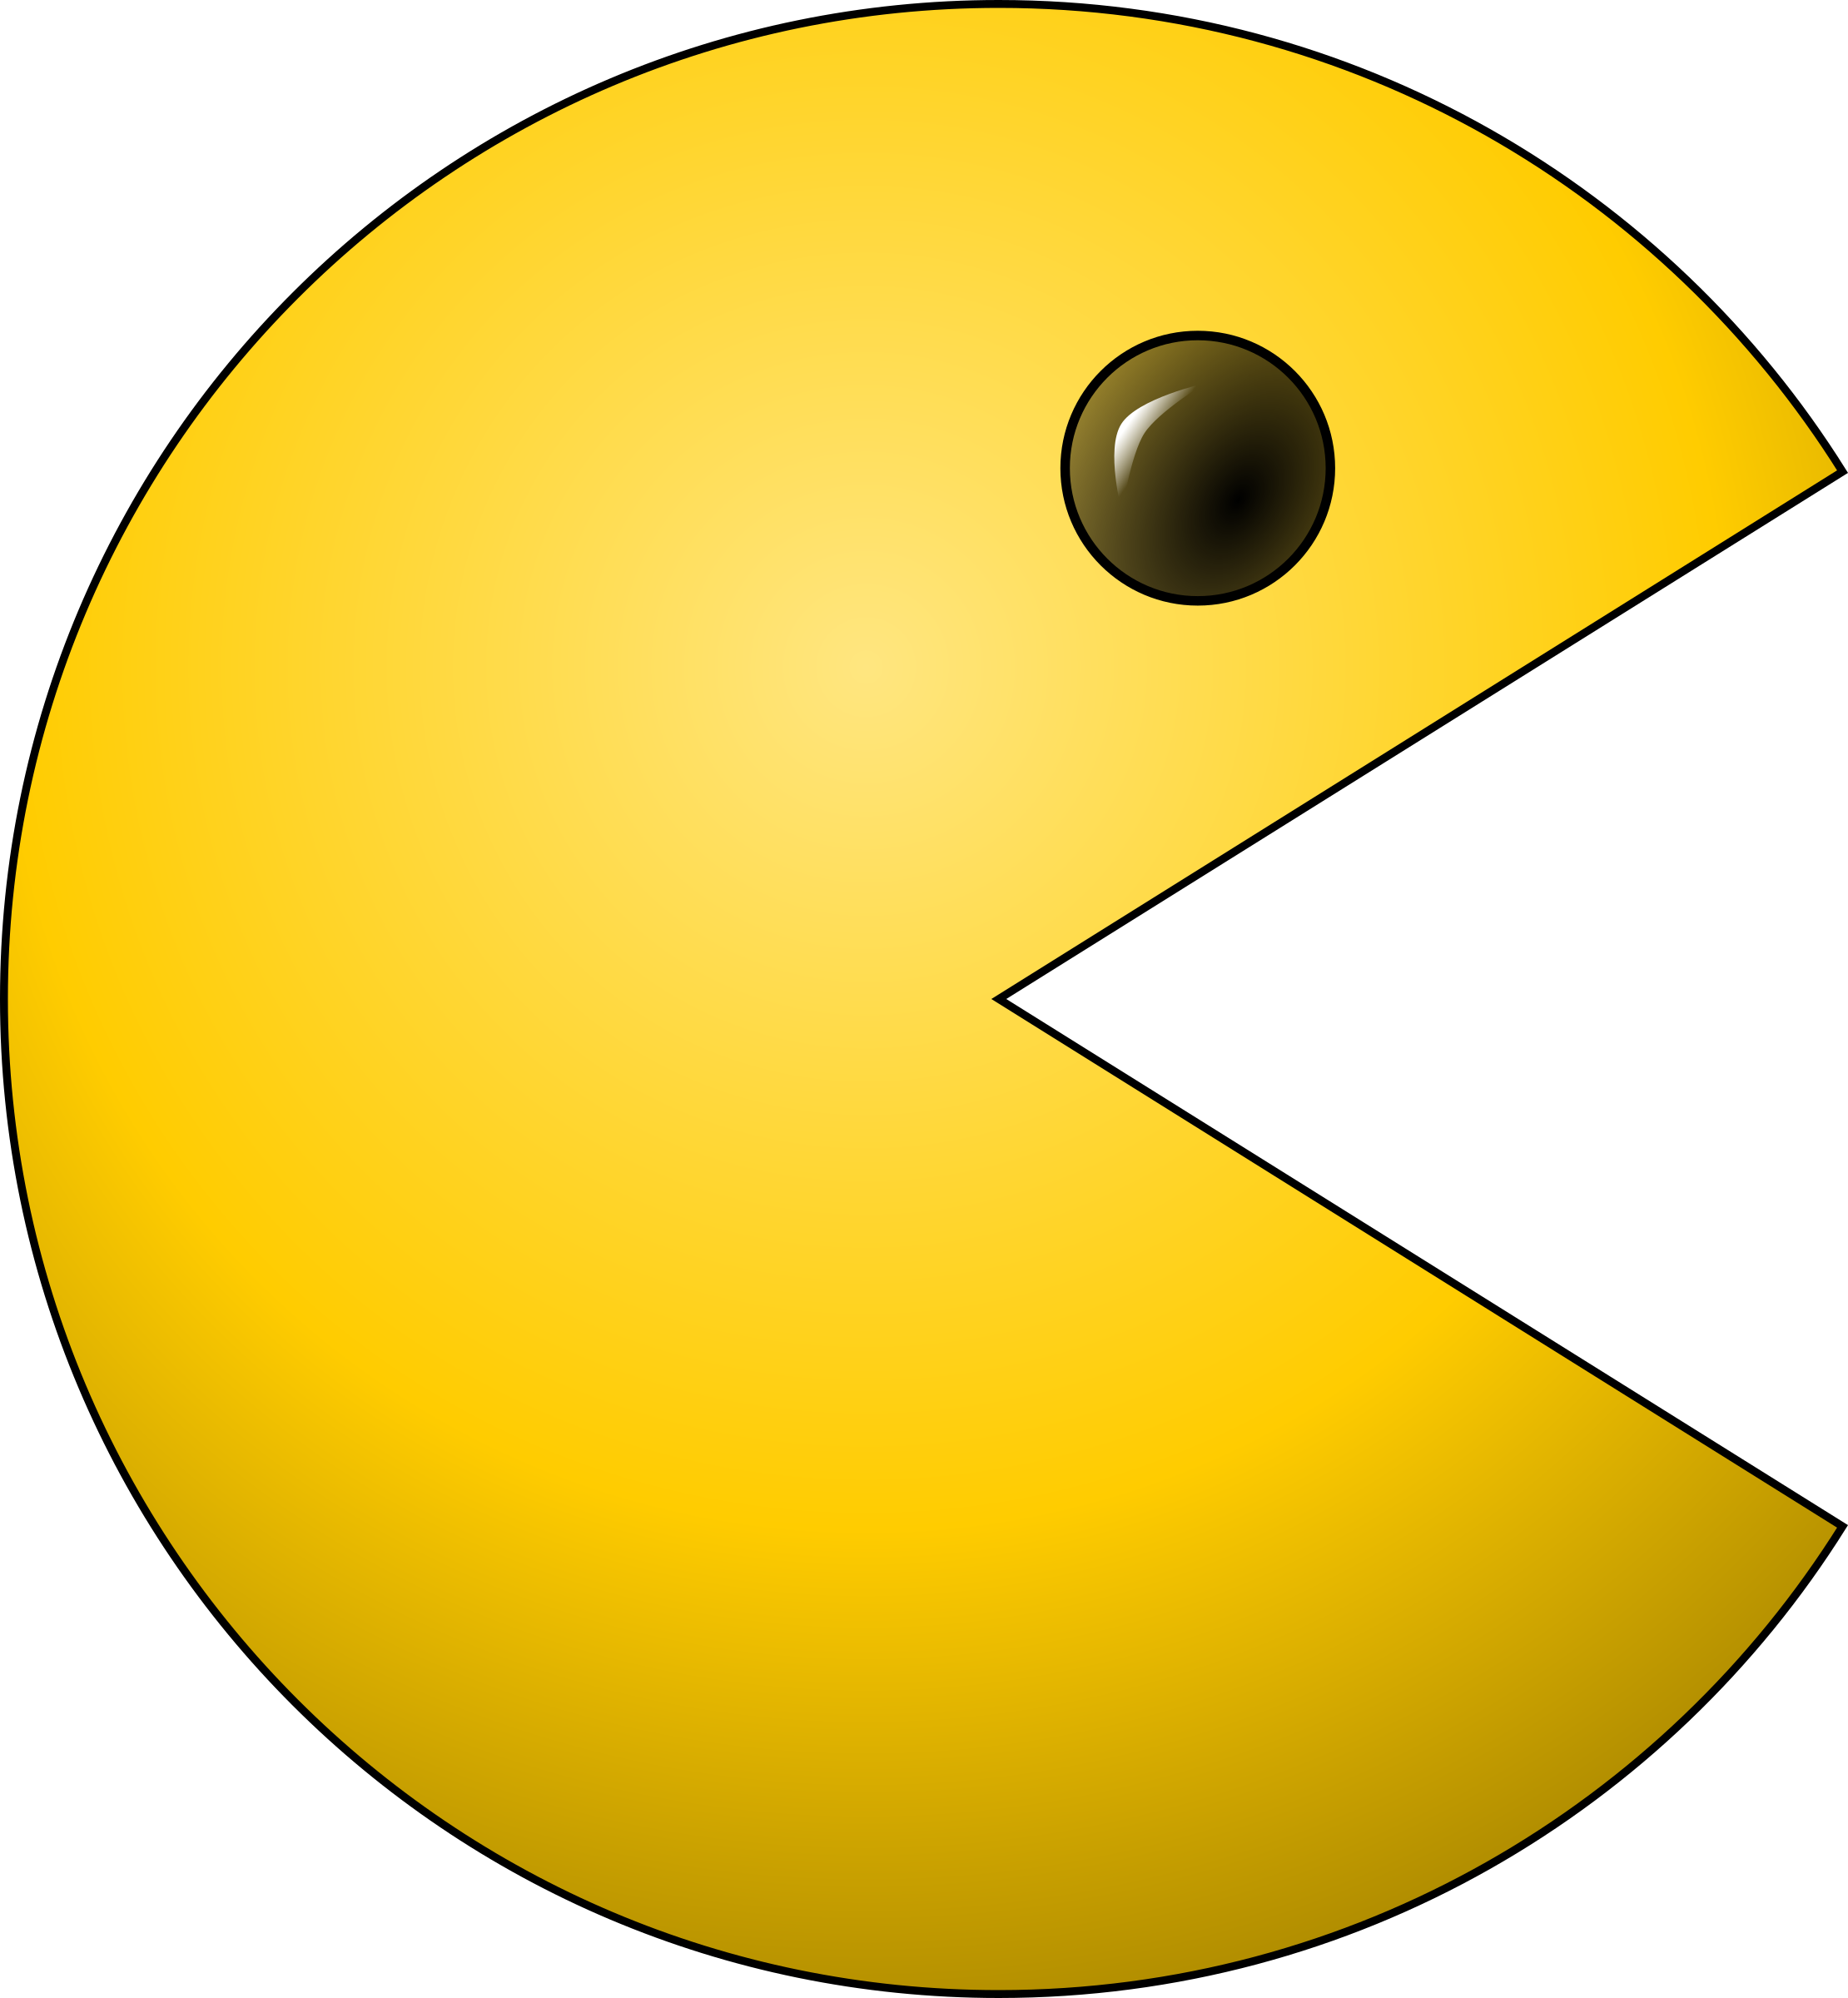 Big image png. Pacman clipart